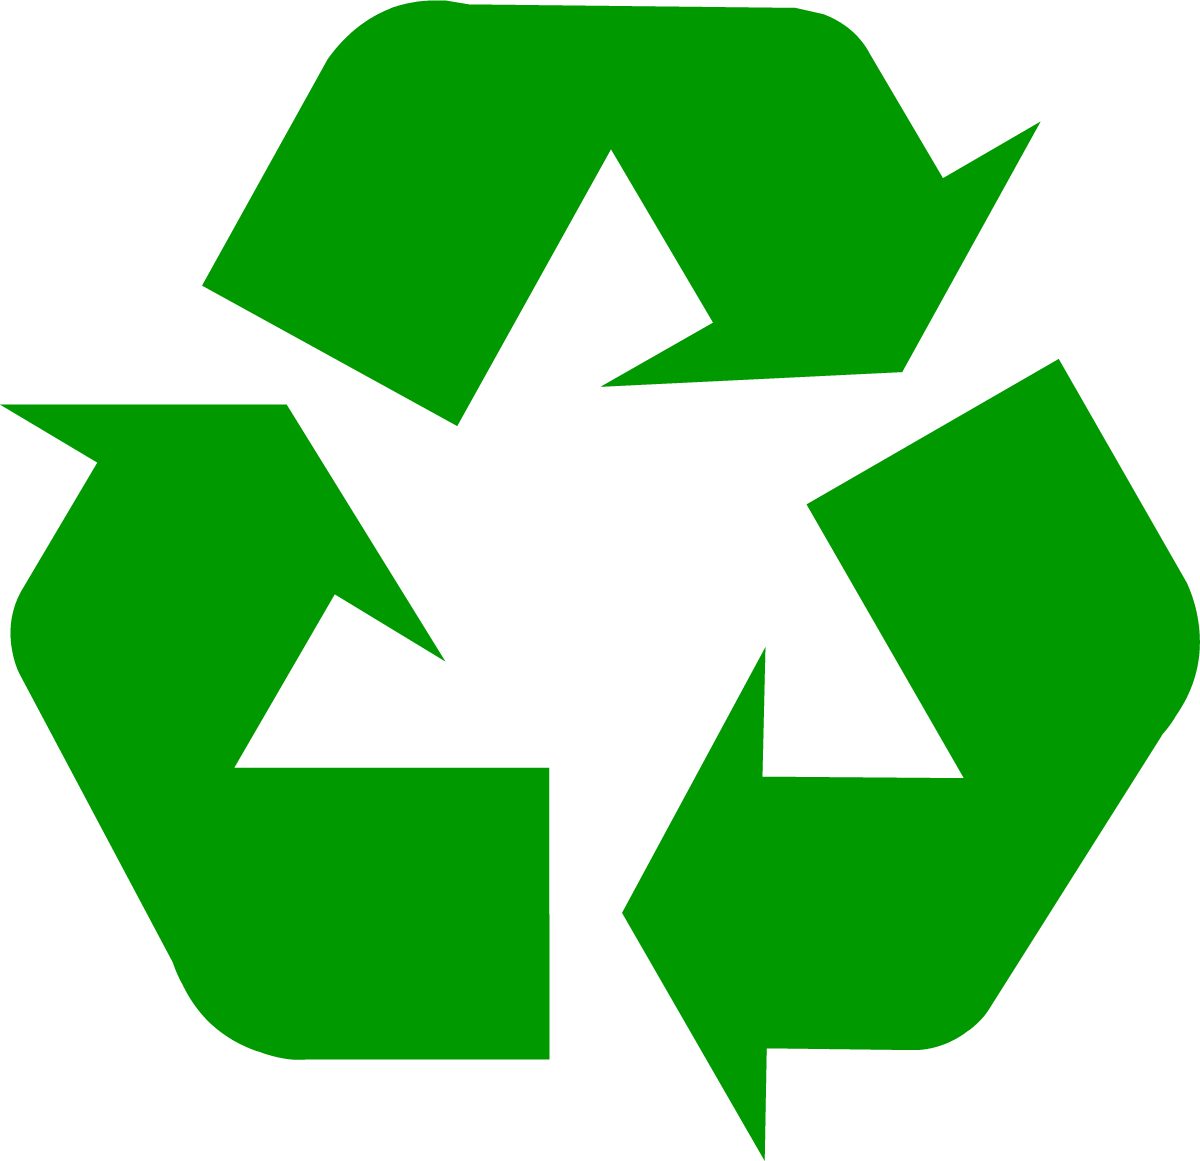 Clipart earth recycling. Download symbol the original